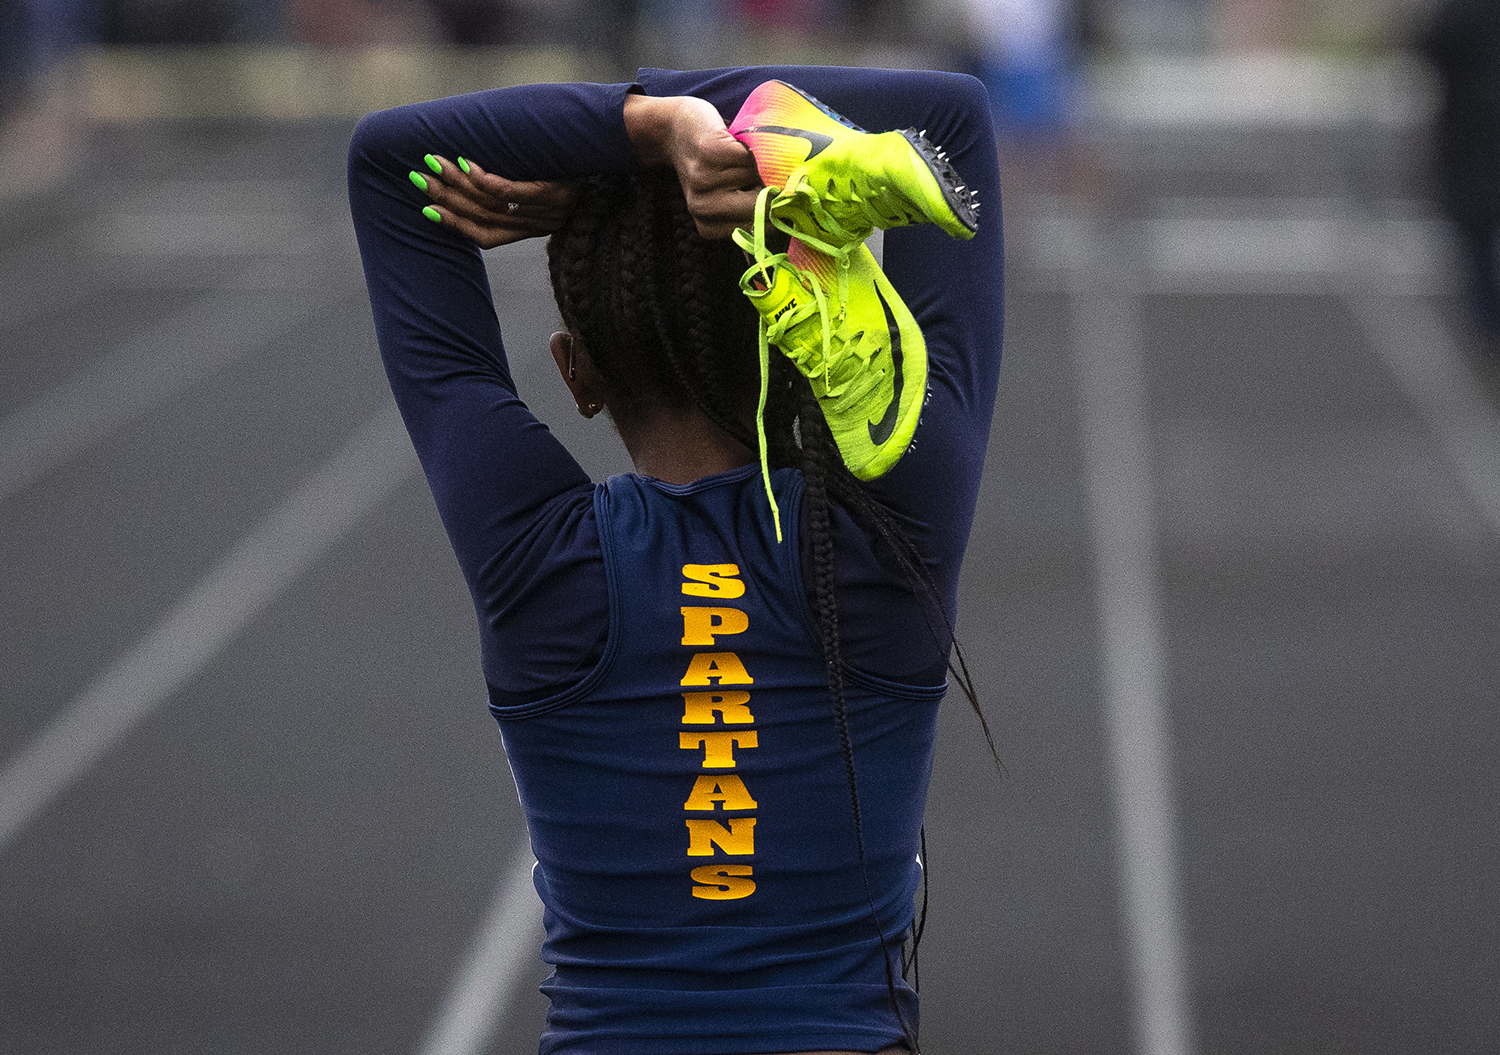 Southeast's Raven Moore recovers after the finish of the 400-meter dash at the Girls City Track Meet Wednesday, April 24, 2019 at Southeast High School in Springfield, Ill. [Rich Saal/The State Journal-Register]